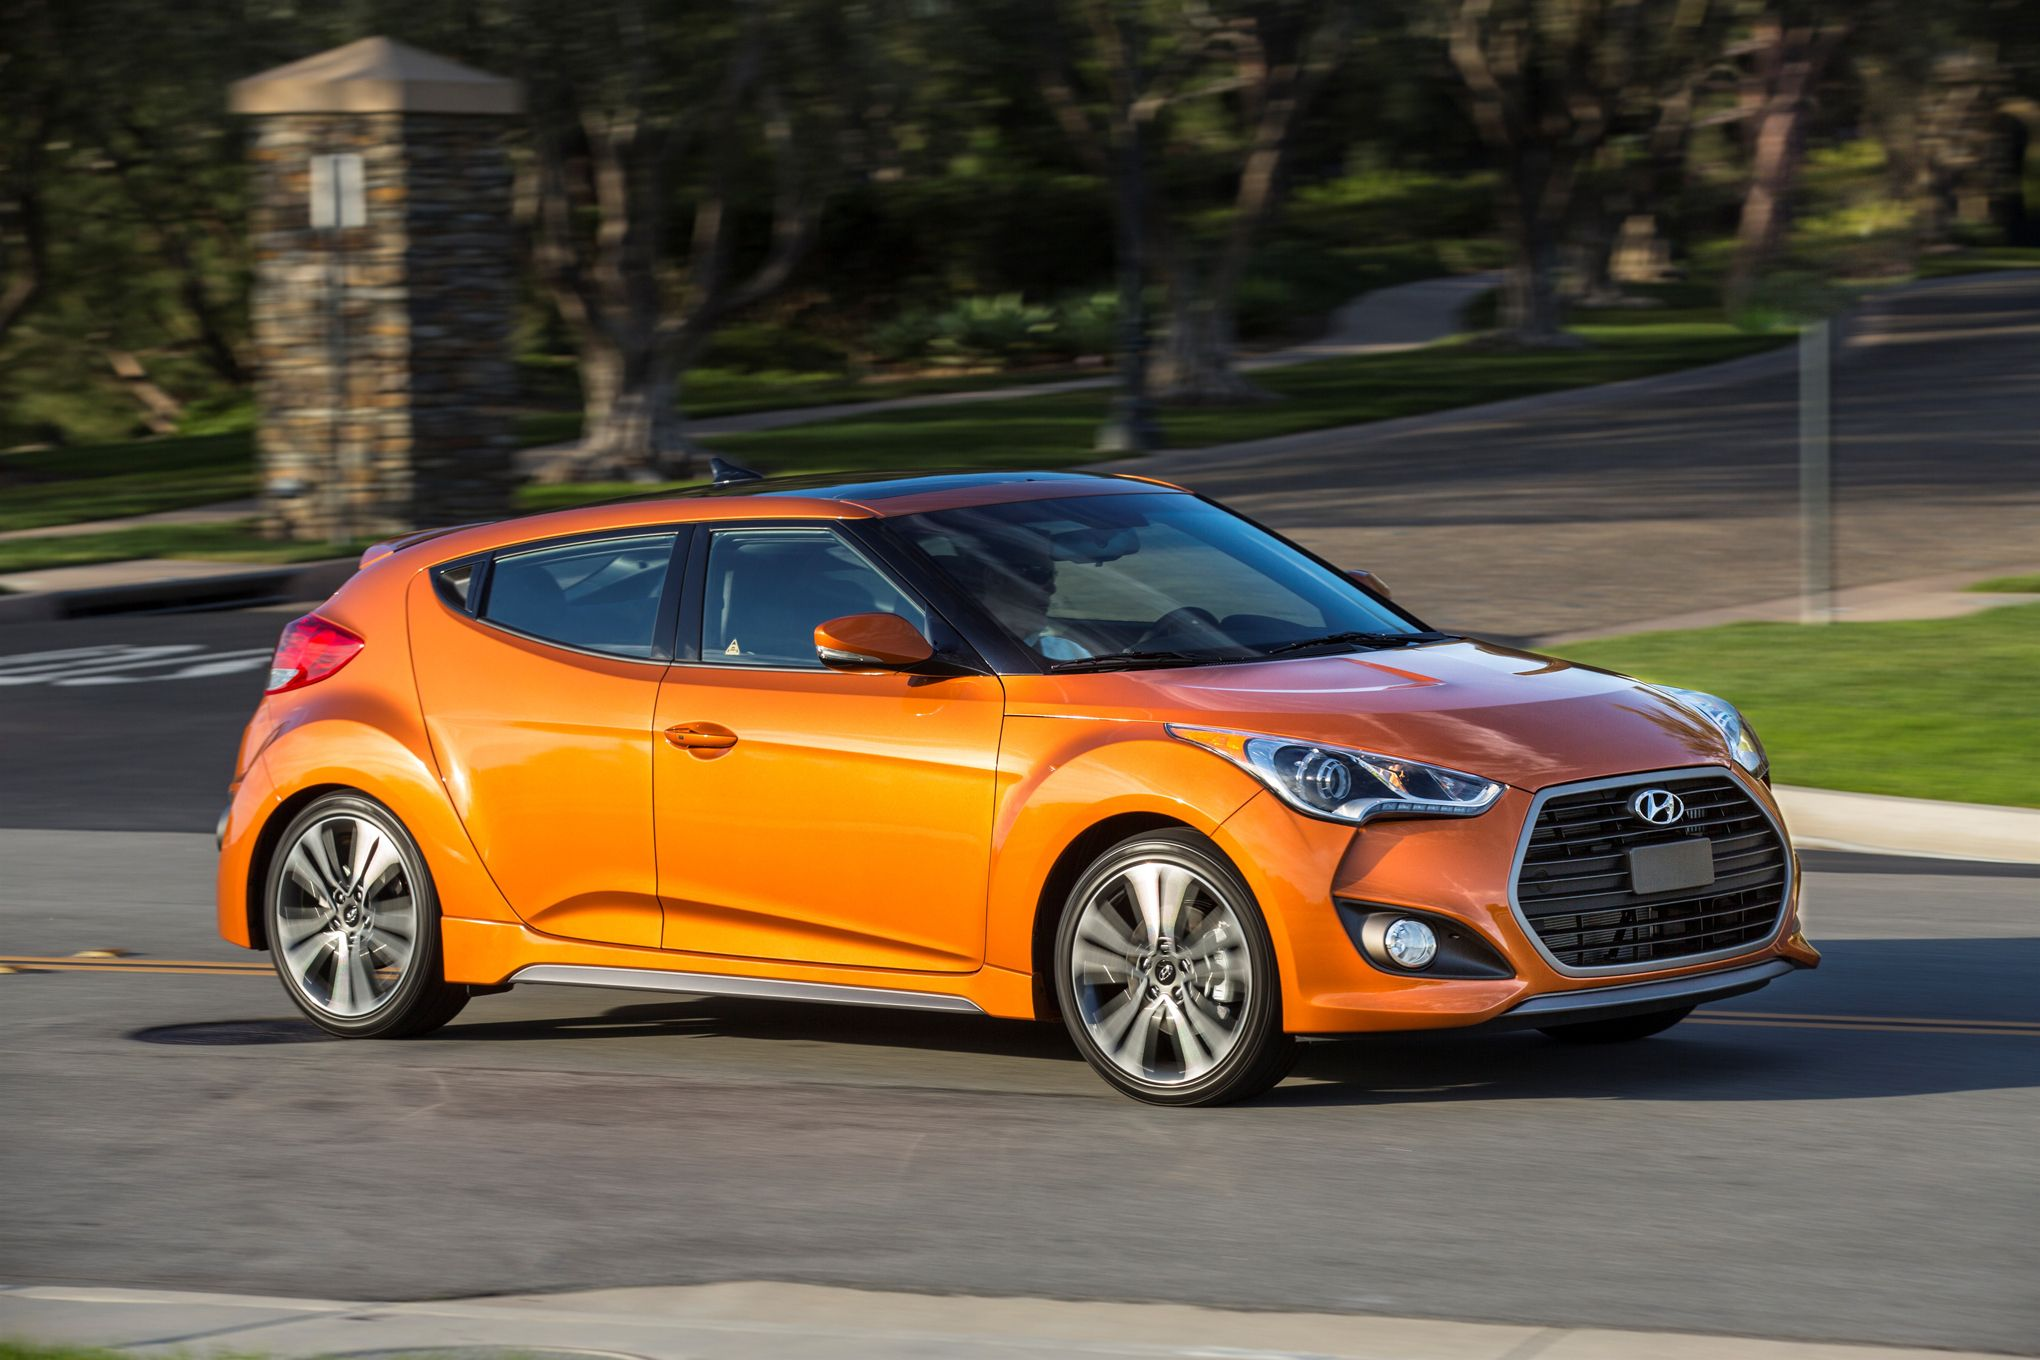 49 Best Hyundai Veloster Images On Pinterest Turbo And Autos